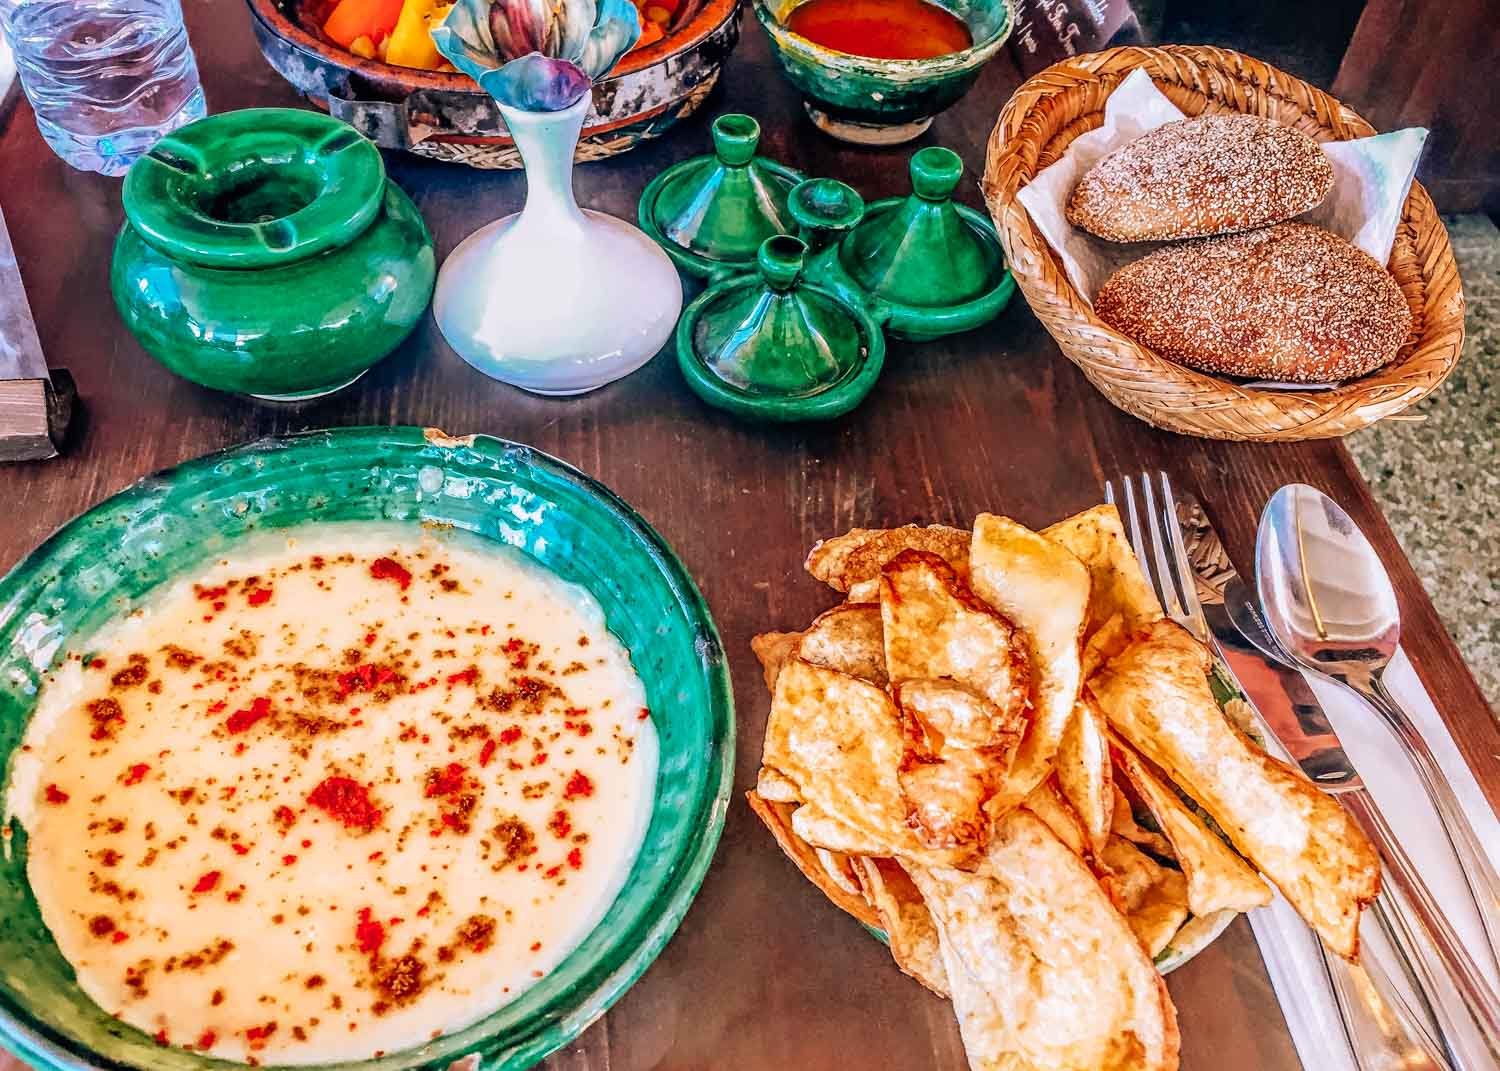 Moroccan food, including soup and bread, on a table.